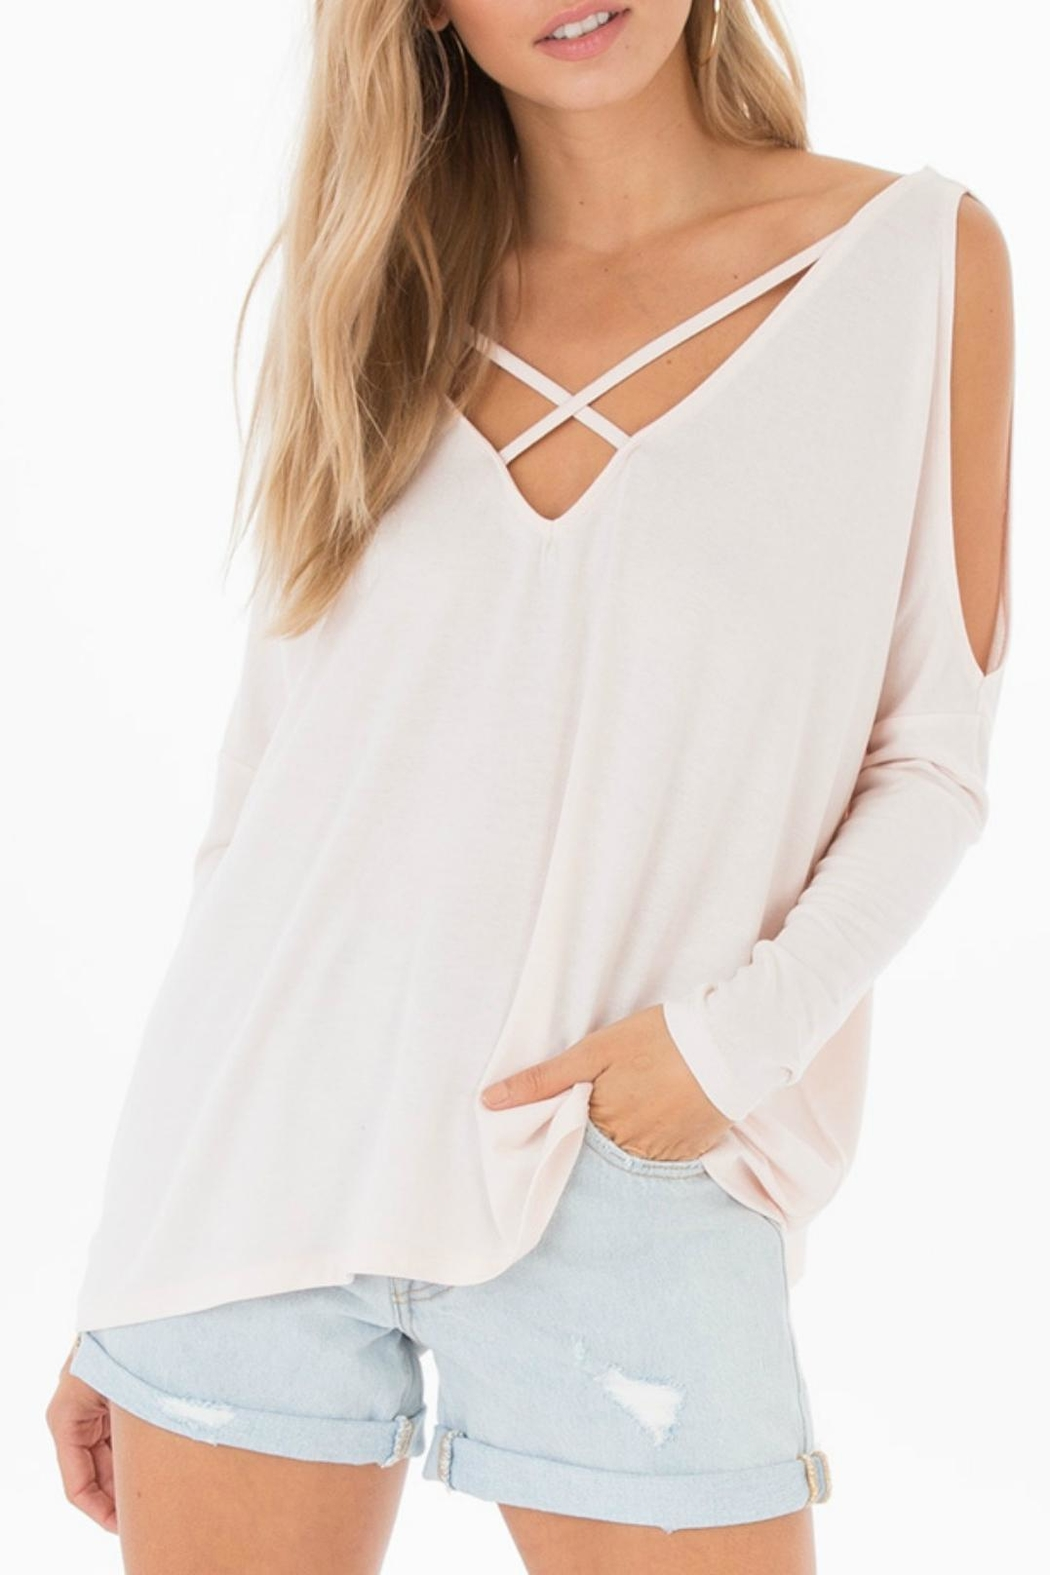 Black Swan Nataly Cut Top - Front Cropped Image